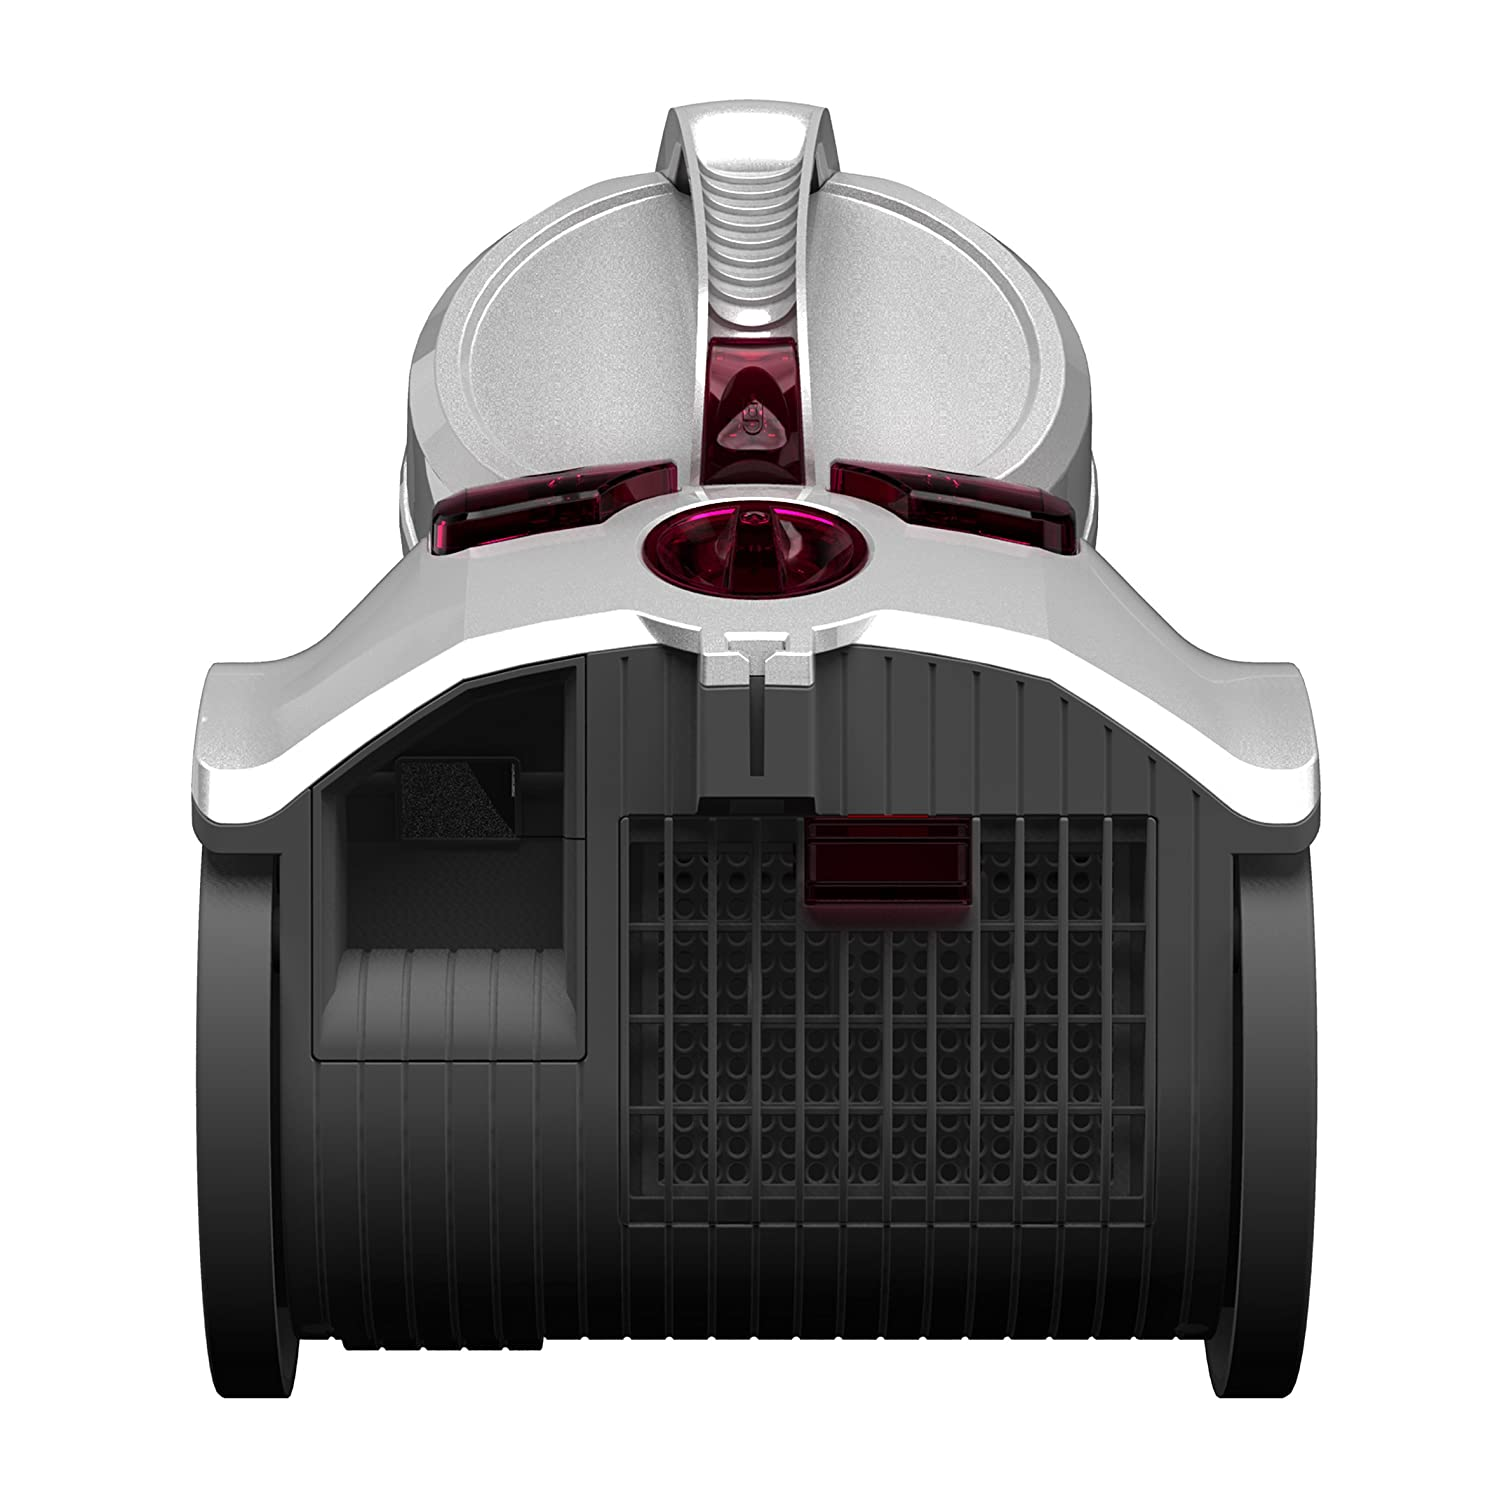 81NeQMKHcQL._SL1500_ vax c89 p6n p power 6 pet bagless cylinder vacuum cleaner, 2200  at honlapkeszites.co